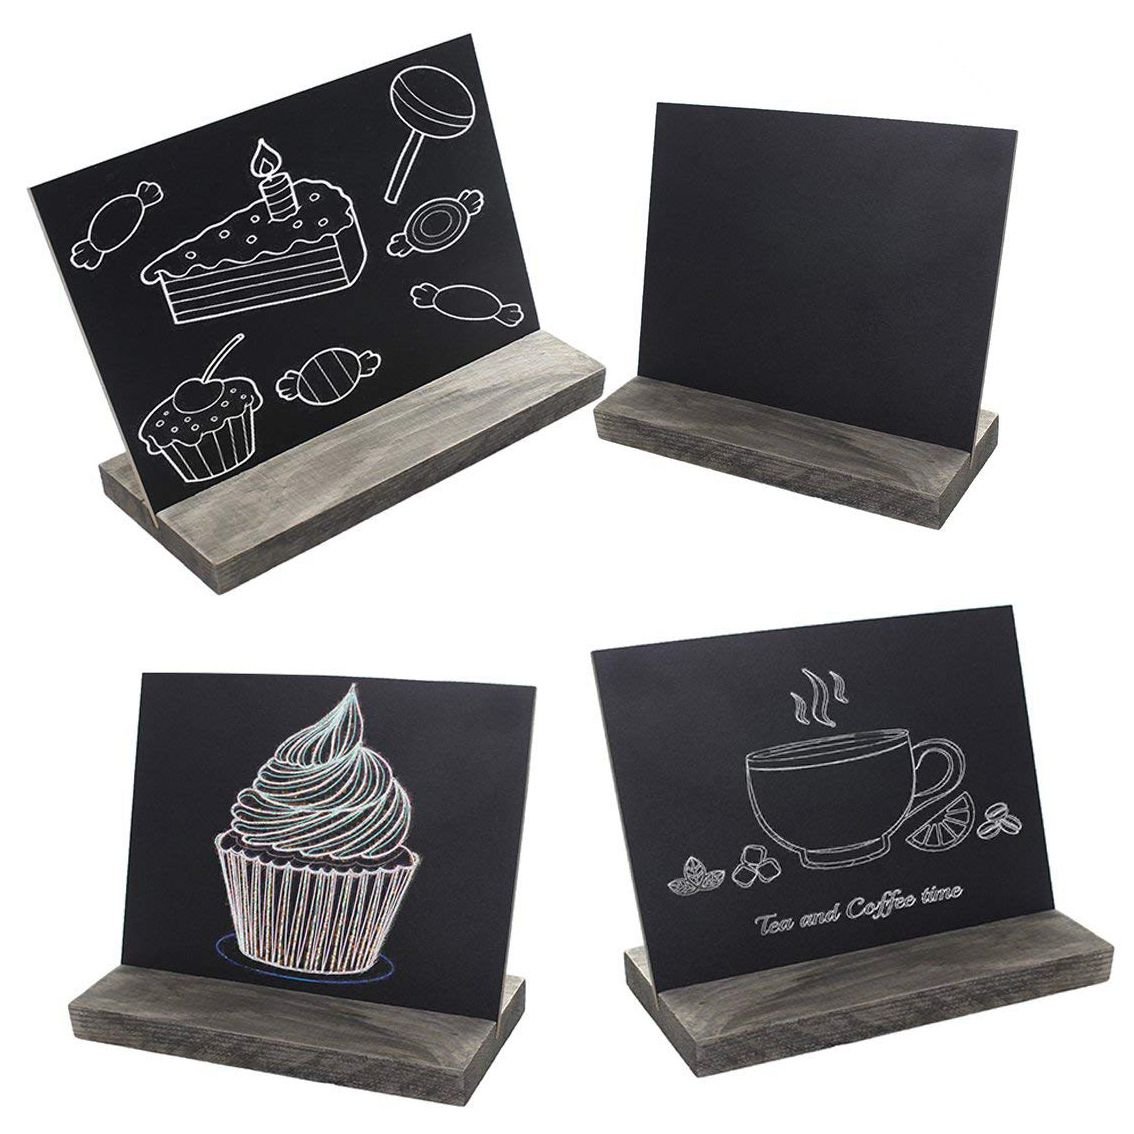 Wooden Mini Blackbord 4pcs Set With 3 Chalks Wood Base Stand Rustic Style Tabletop Chalkboard Small Sign Name Card 15.3x12.7x4.6